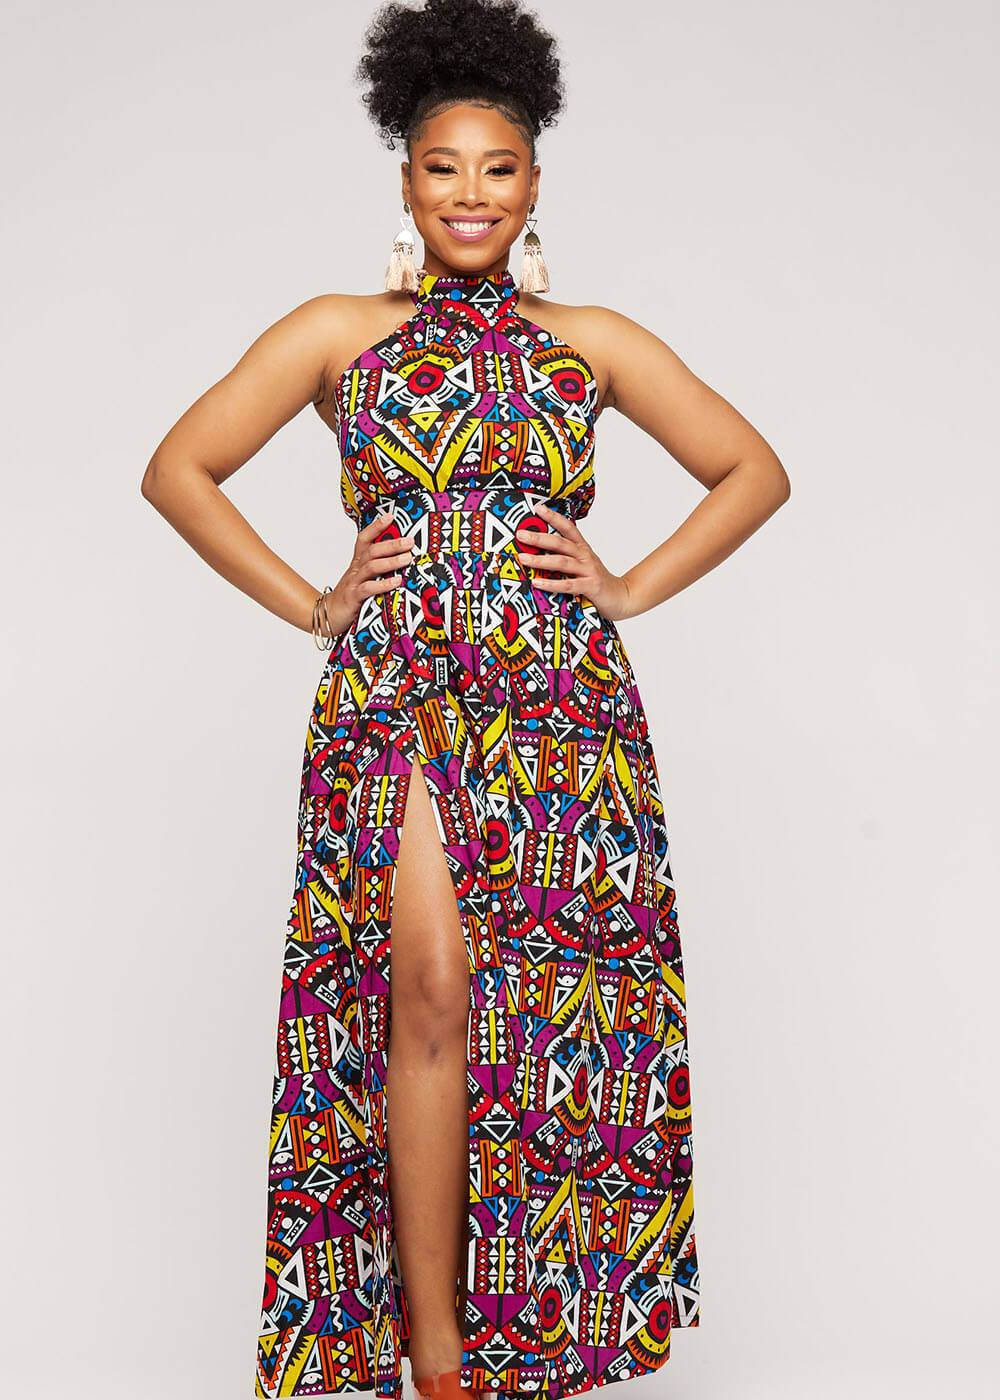 Take a look at this beautifully styled halter long African print dress